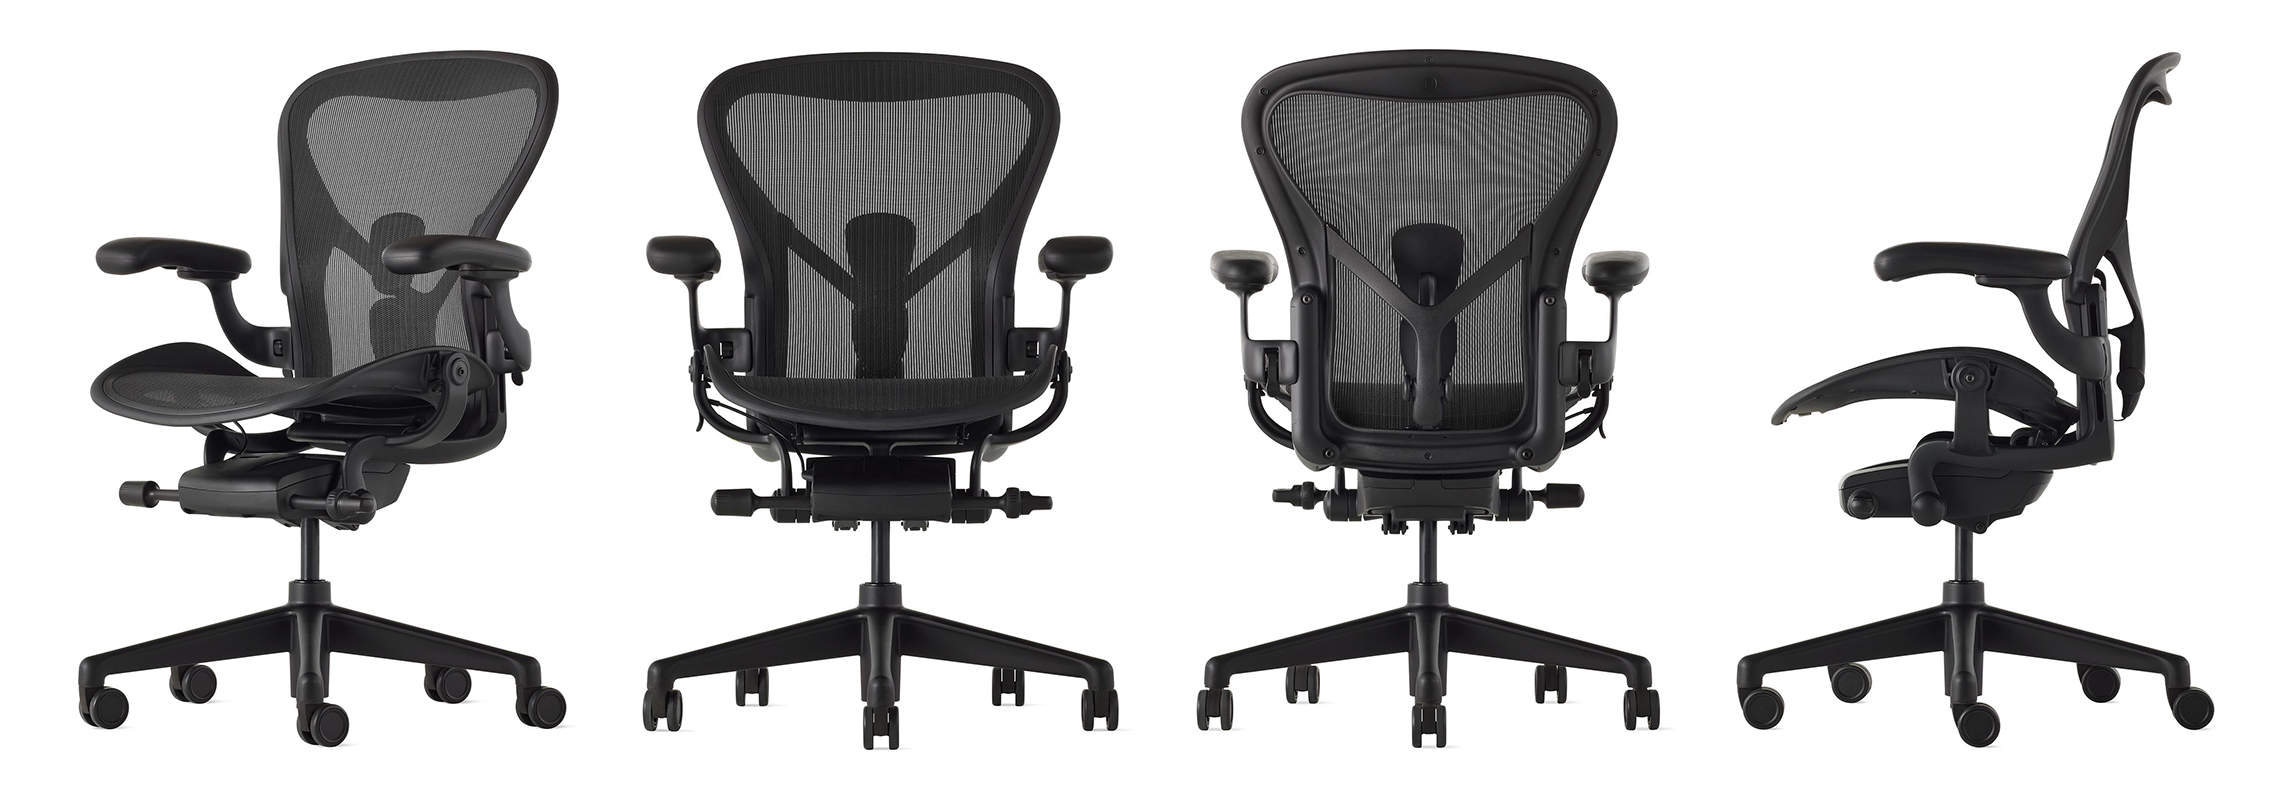 Image 2 for AERON REMASTERED ONYX BY HERMAN MILLER